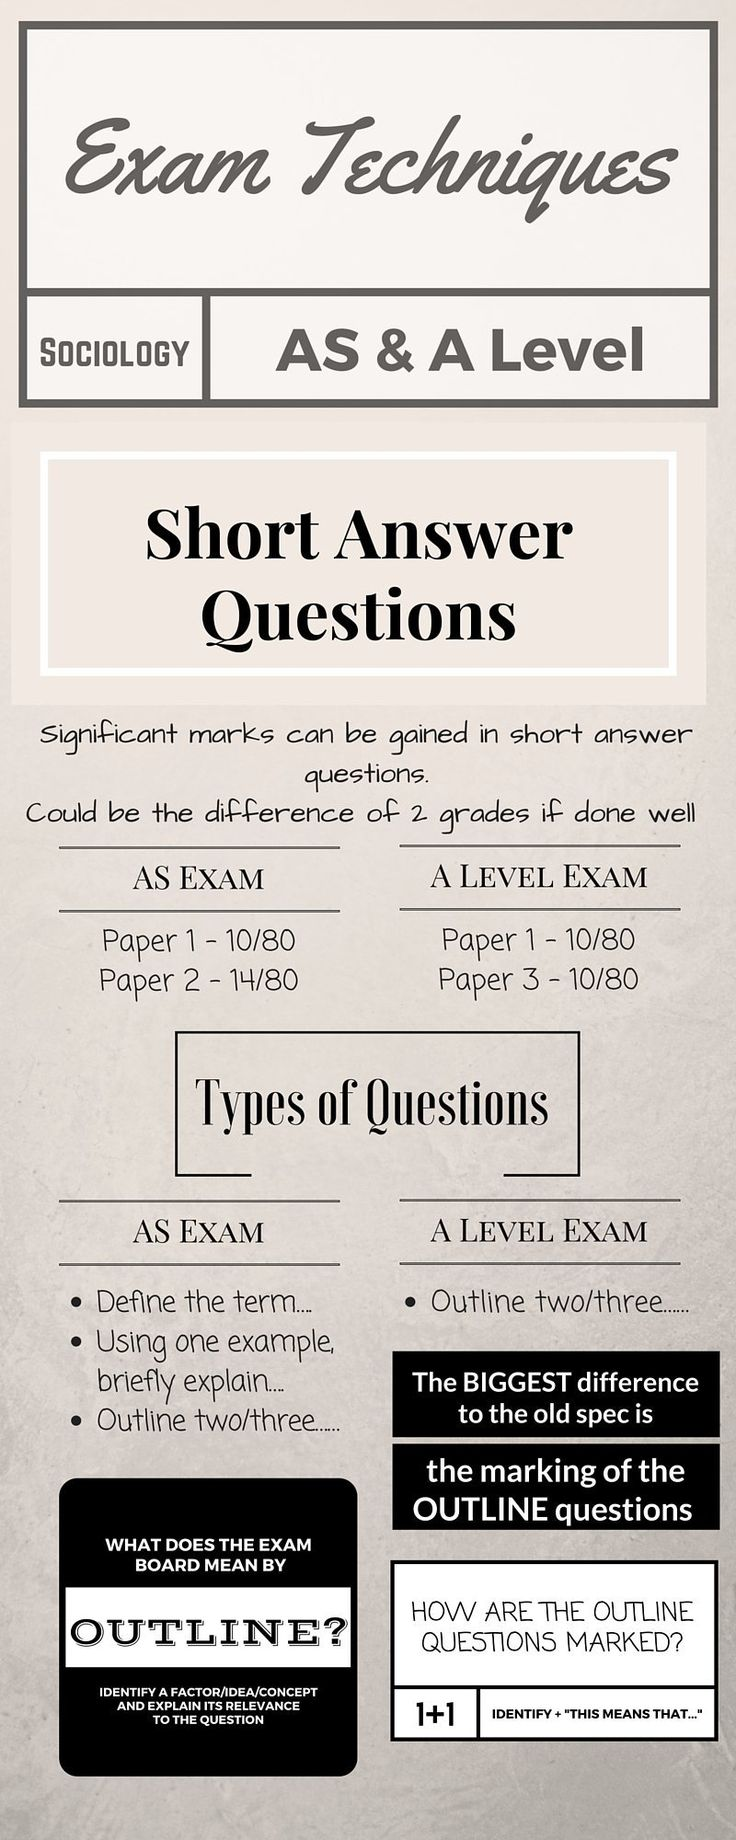 Taking Advice Essay Comparison And Contrast Essays  A Method For Fdaddfedabdfed Taking Advice Essay